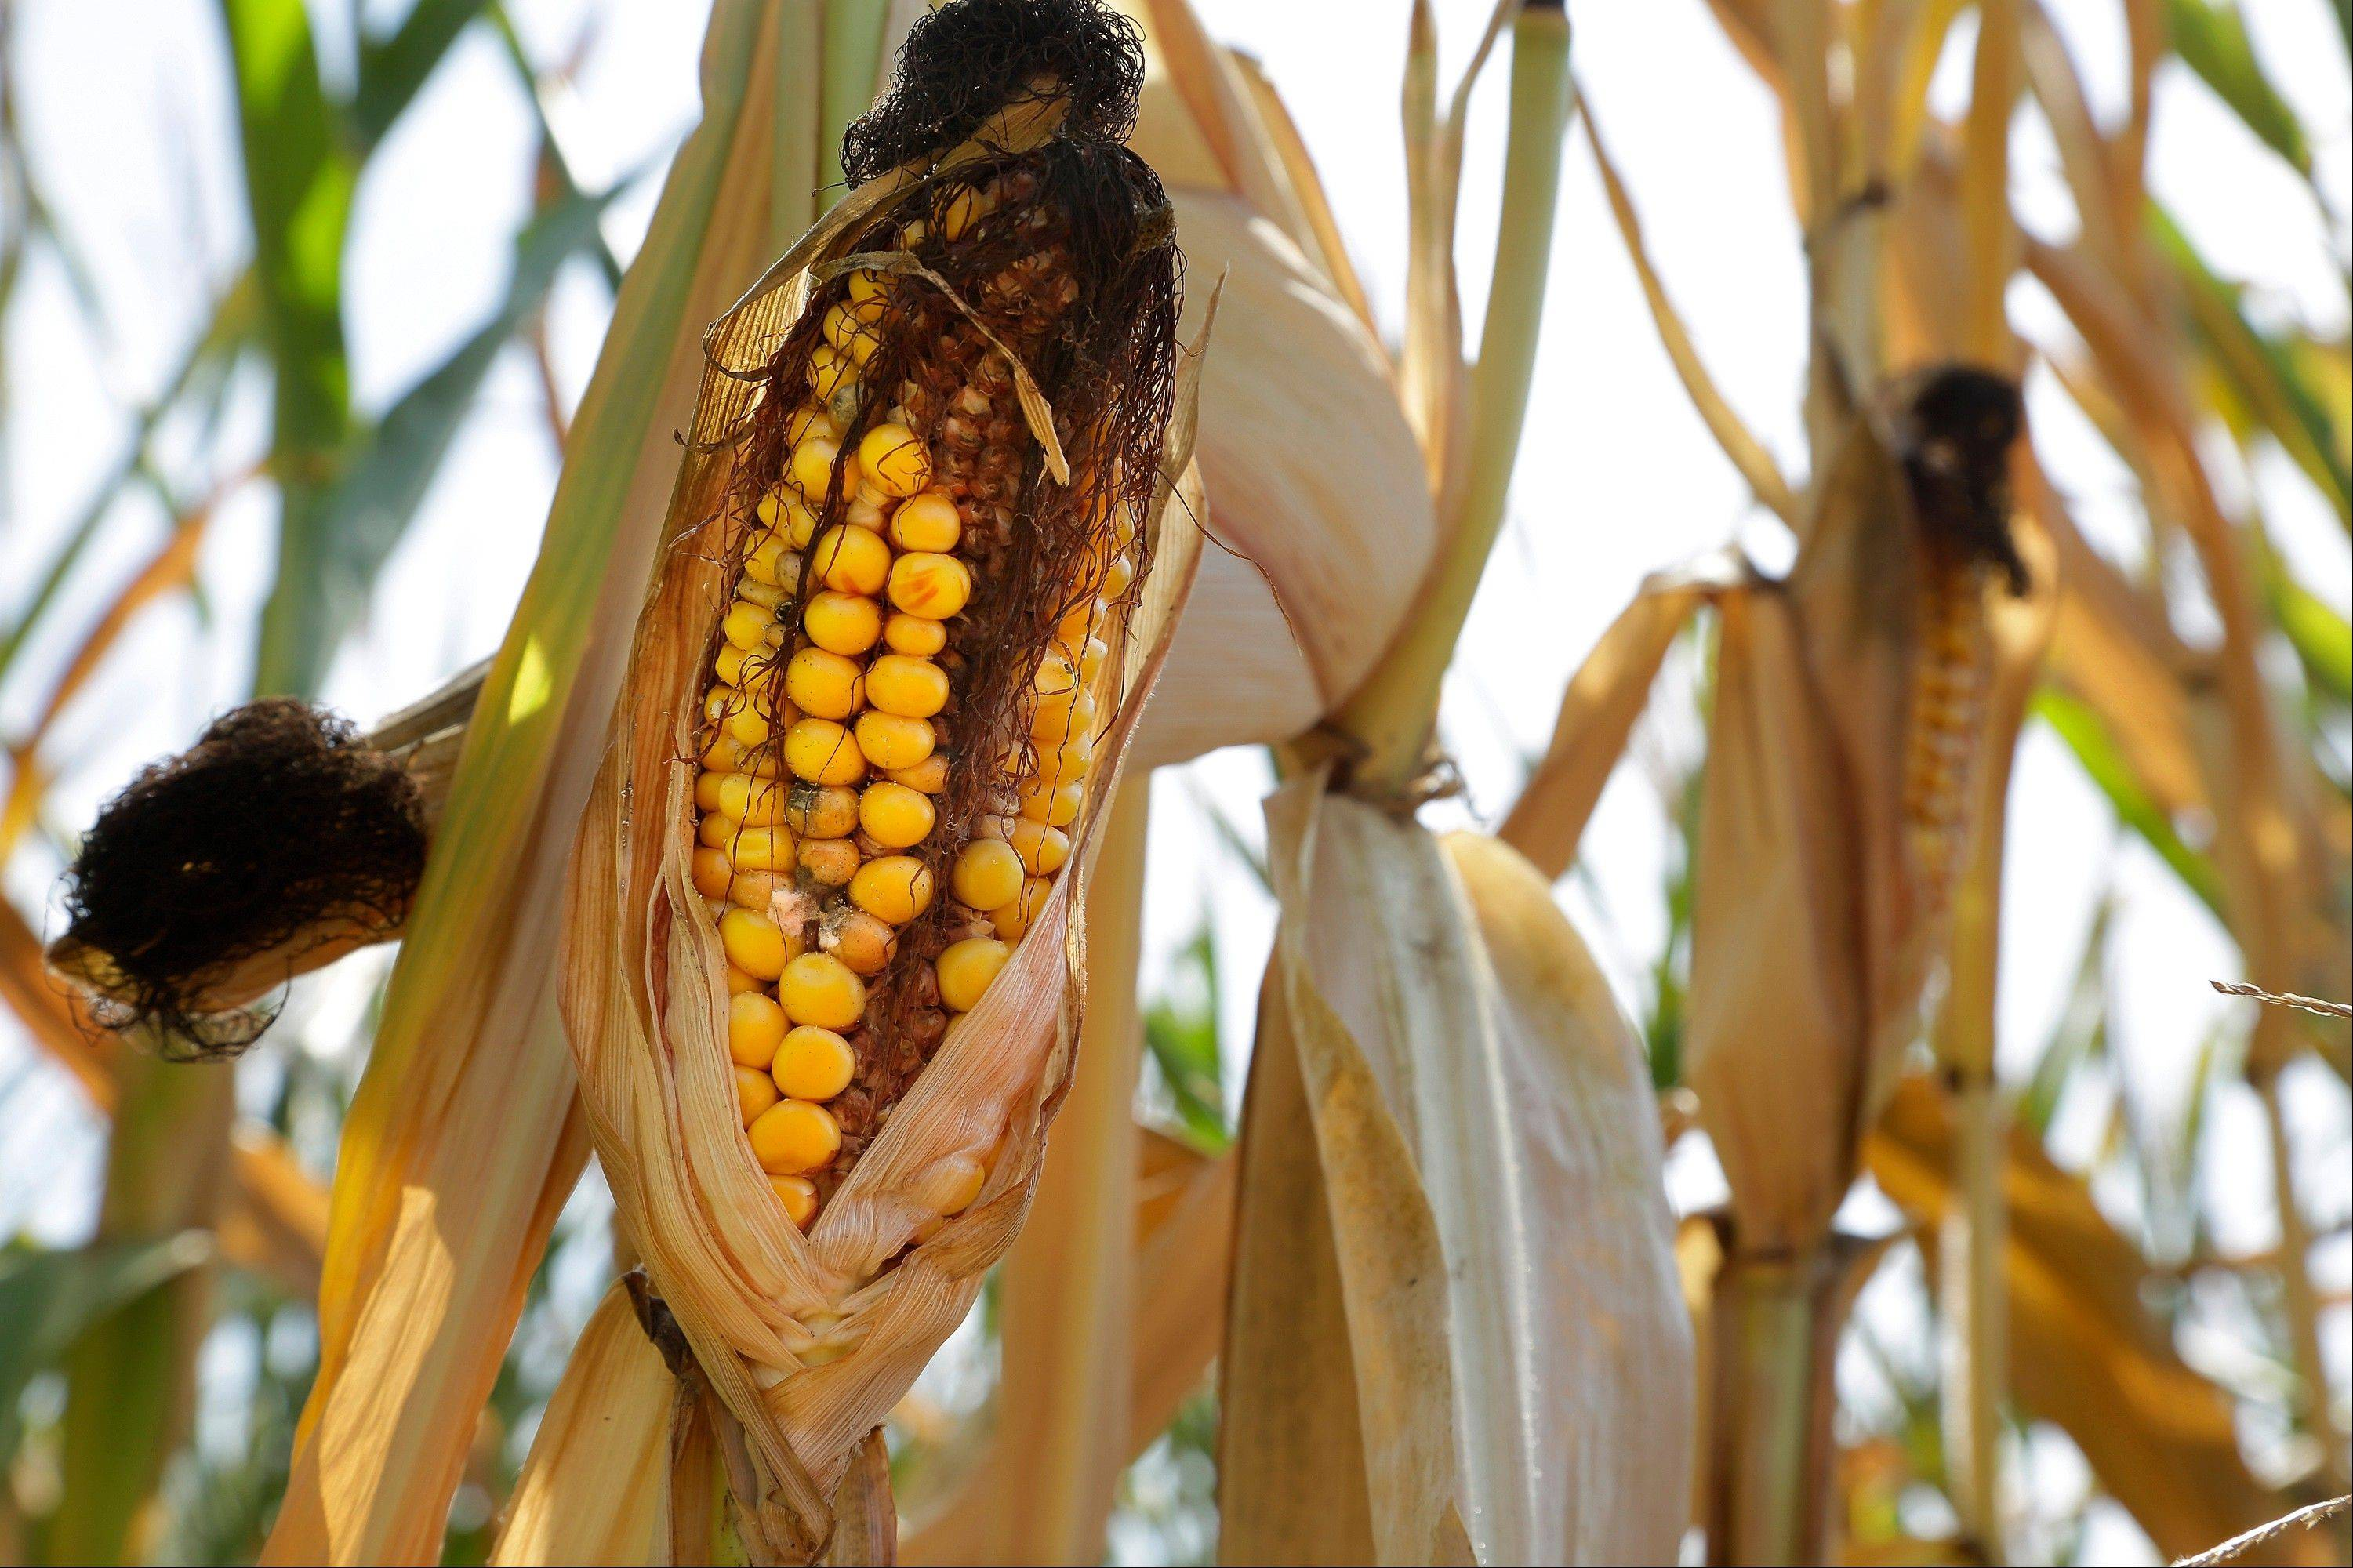 An ear of corn is blackened in the sun and heat Tuesday in Farmingdale, Ill. A growing season that began unusually wet and cold in the Midwest is finishing hot and dry, renewing worries of drought and its impact on crops.